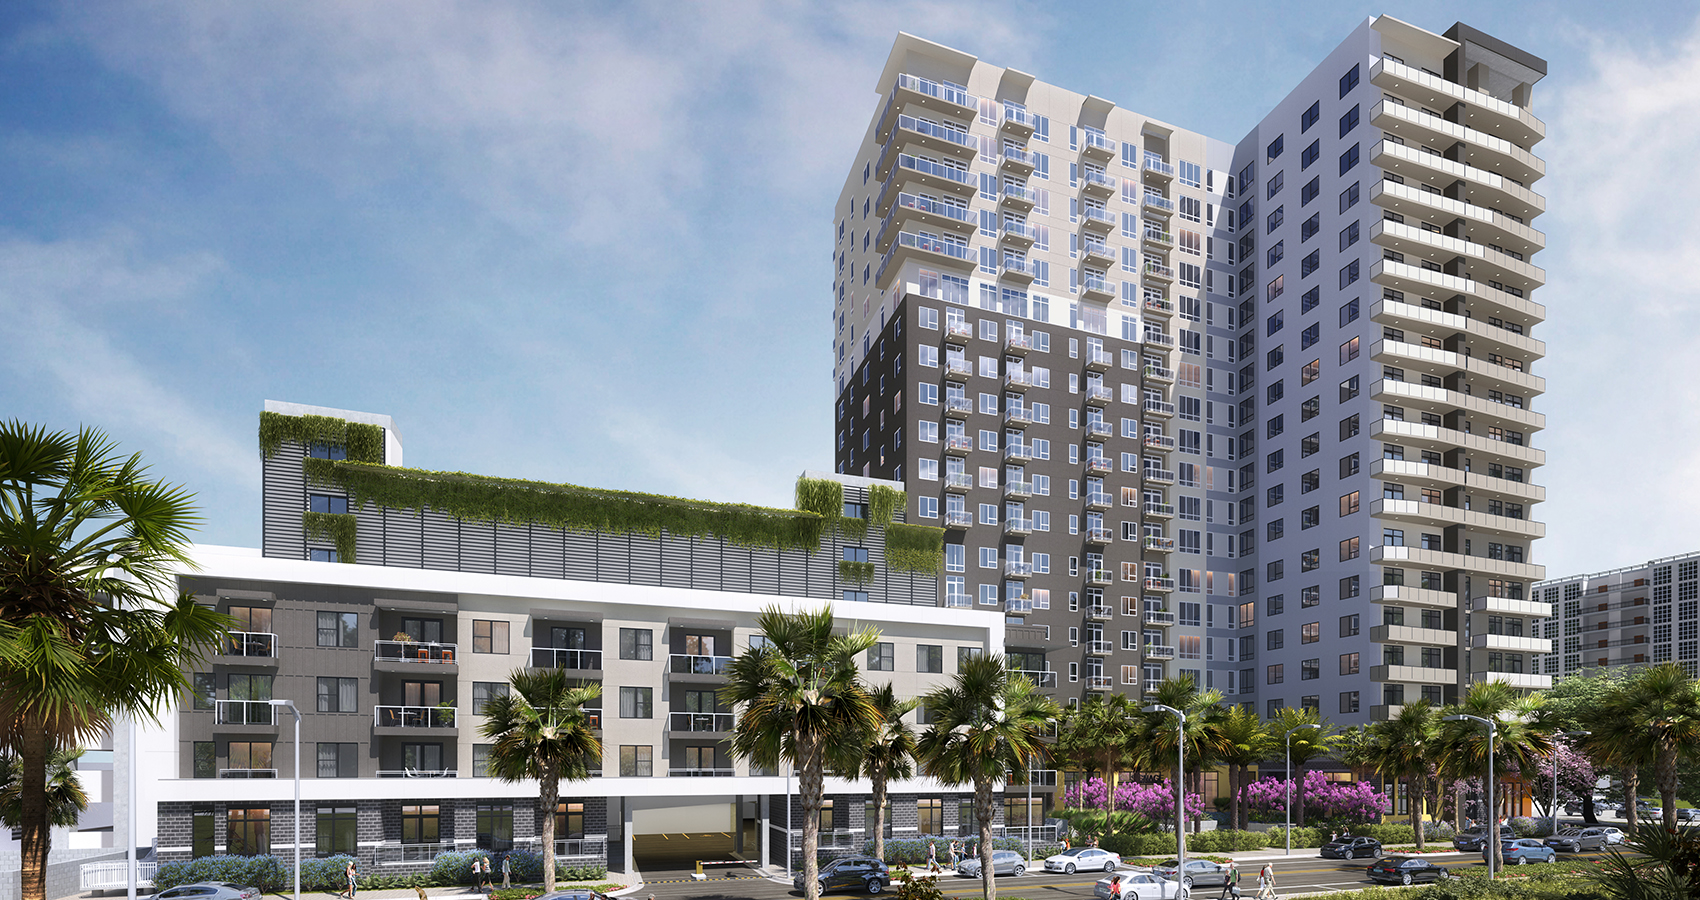 Daniel Corporation - Channelside District Residential Tower